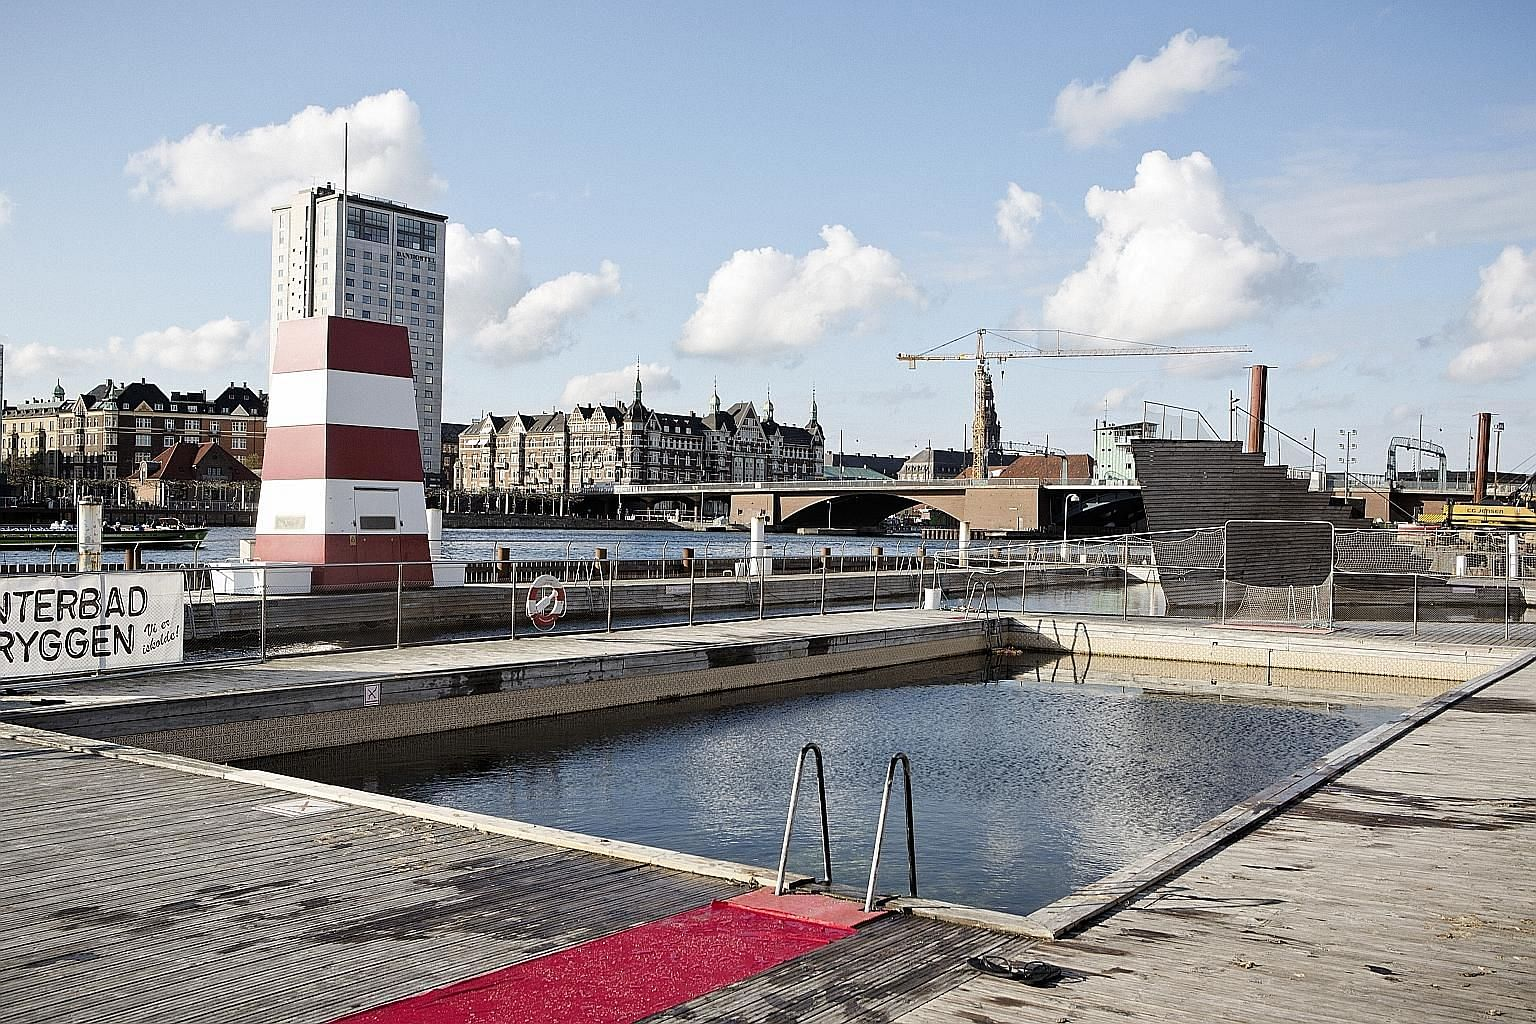 The Harbour Bath at Islands Brygge in Copenhagen allows residents to use their waterways for recreation. The water is so clean that they can swim in the city's harbour area.